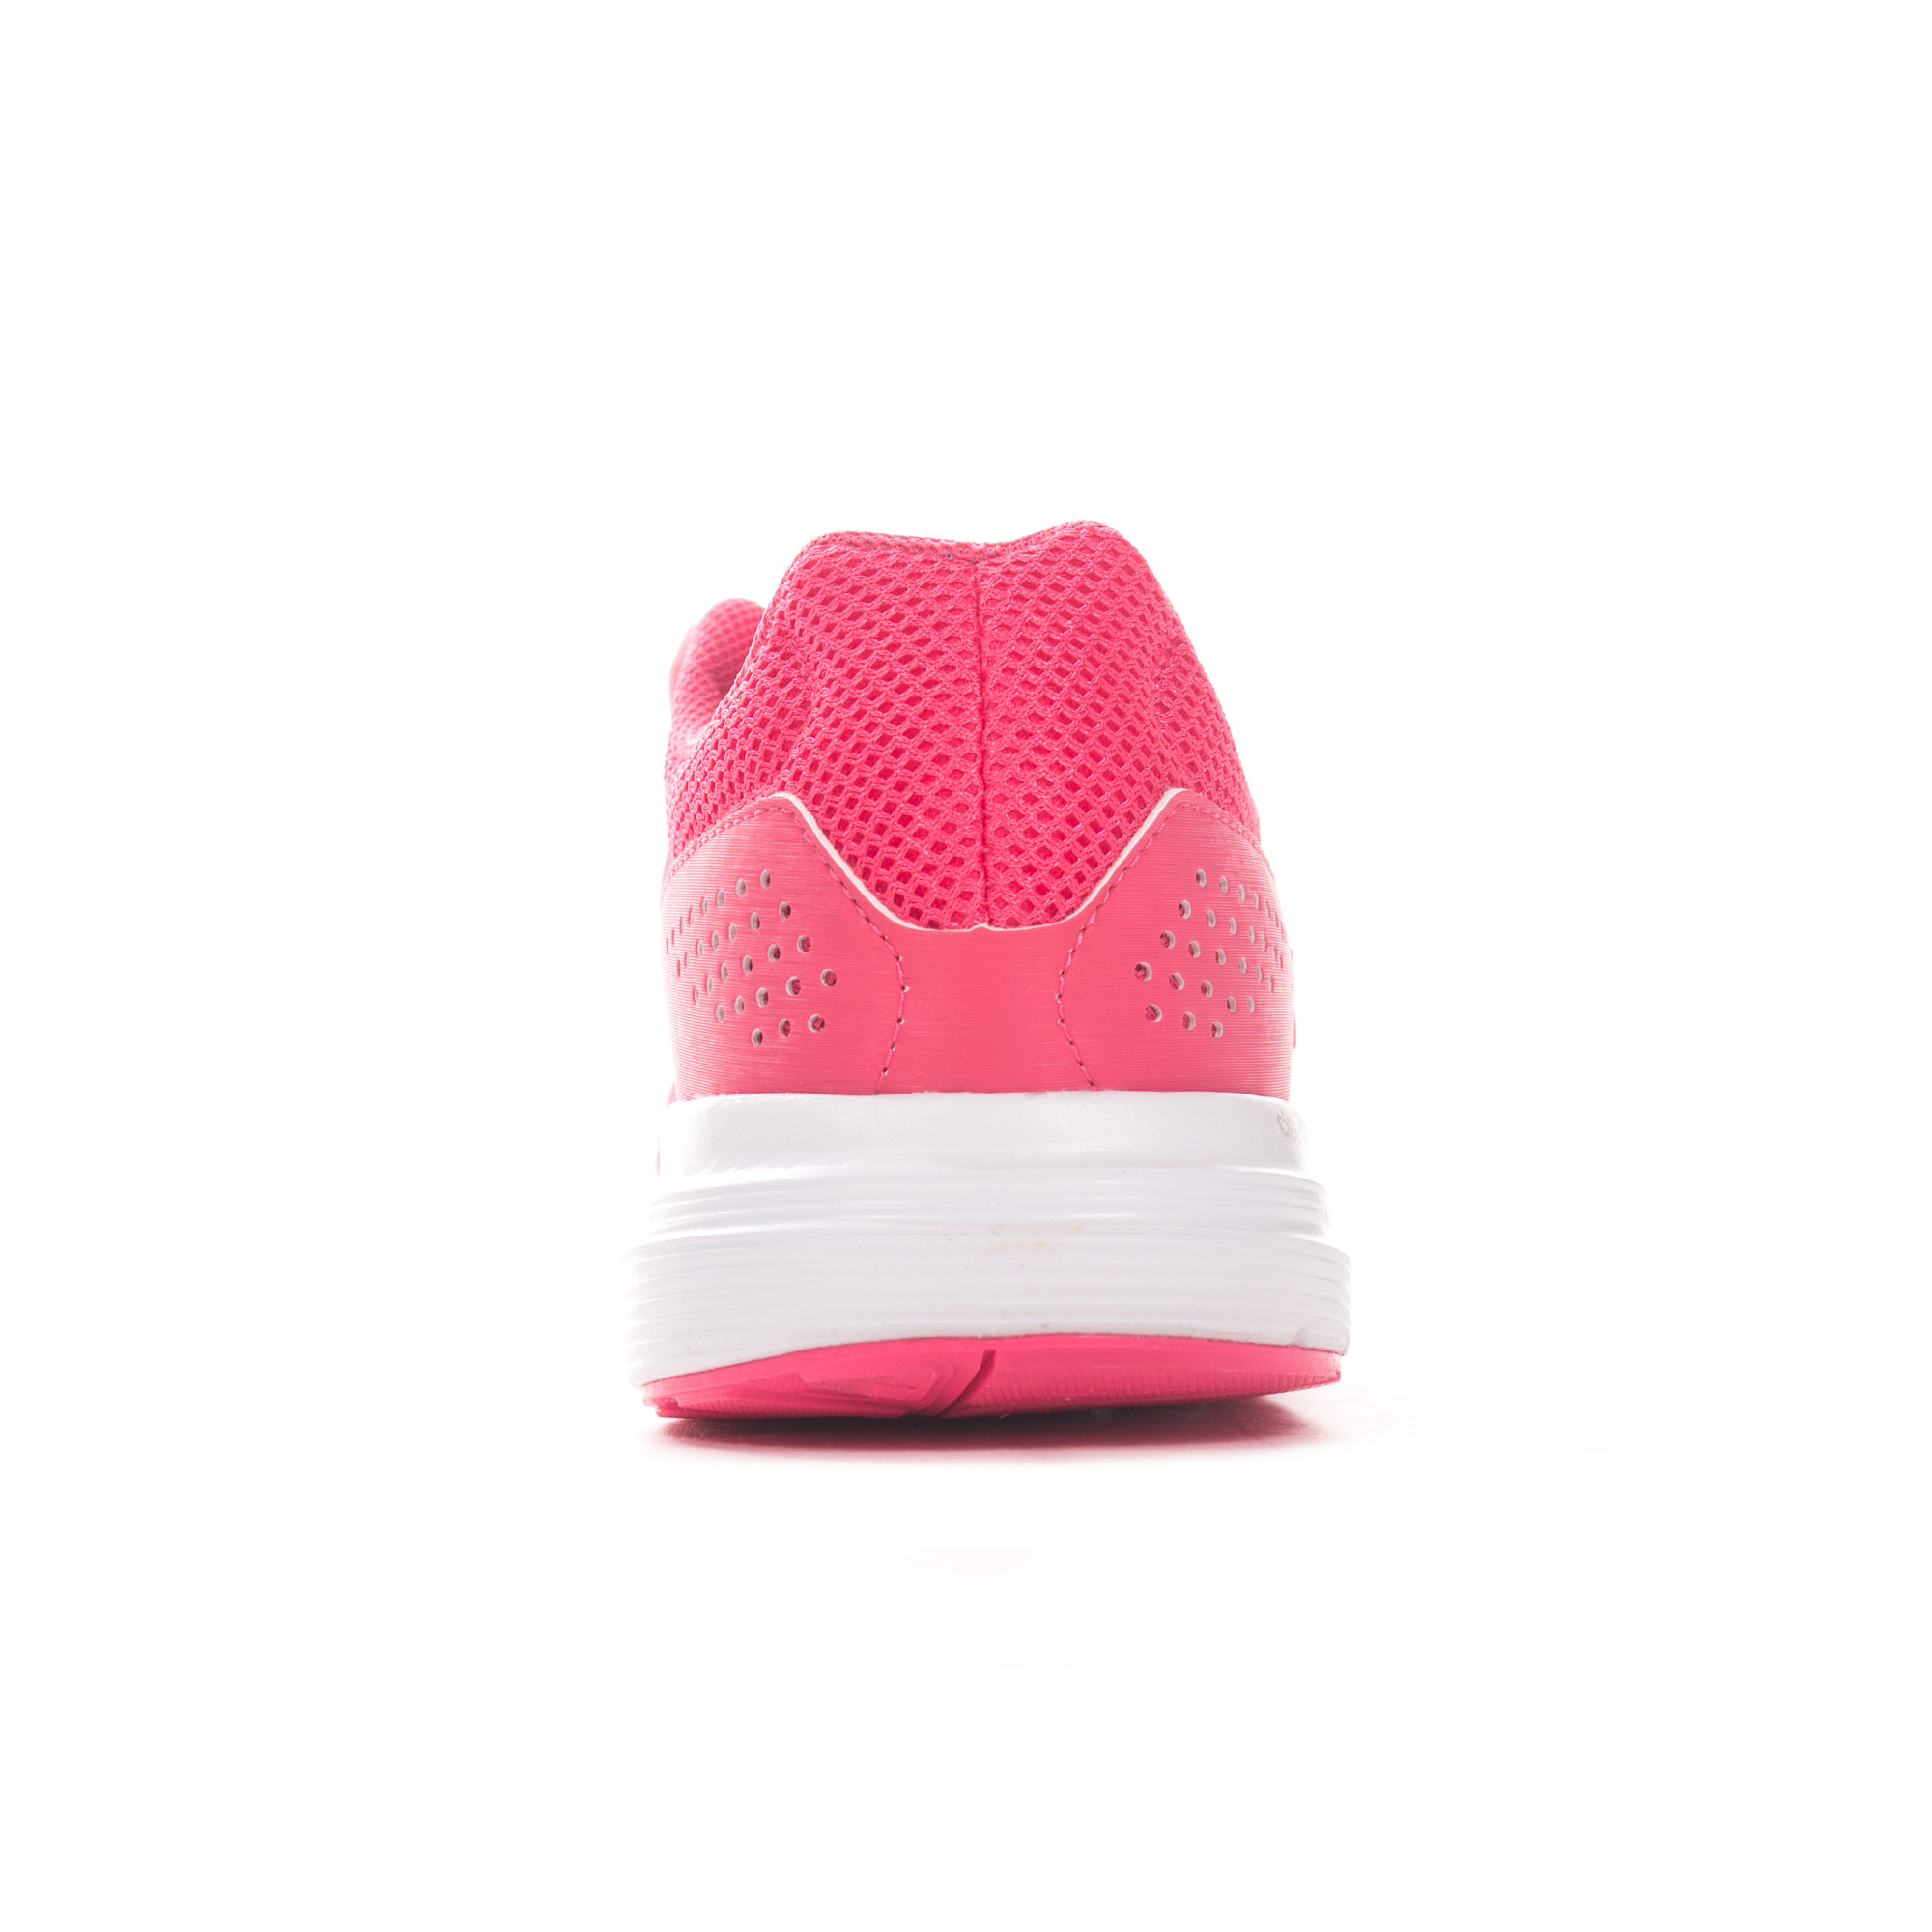 new concept a7402 f6131 Chaussures Femme adidas Galaxy 4 Running Running Trainer Rose - Royaume-Uni  4